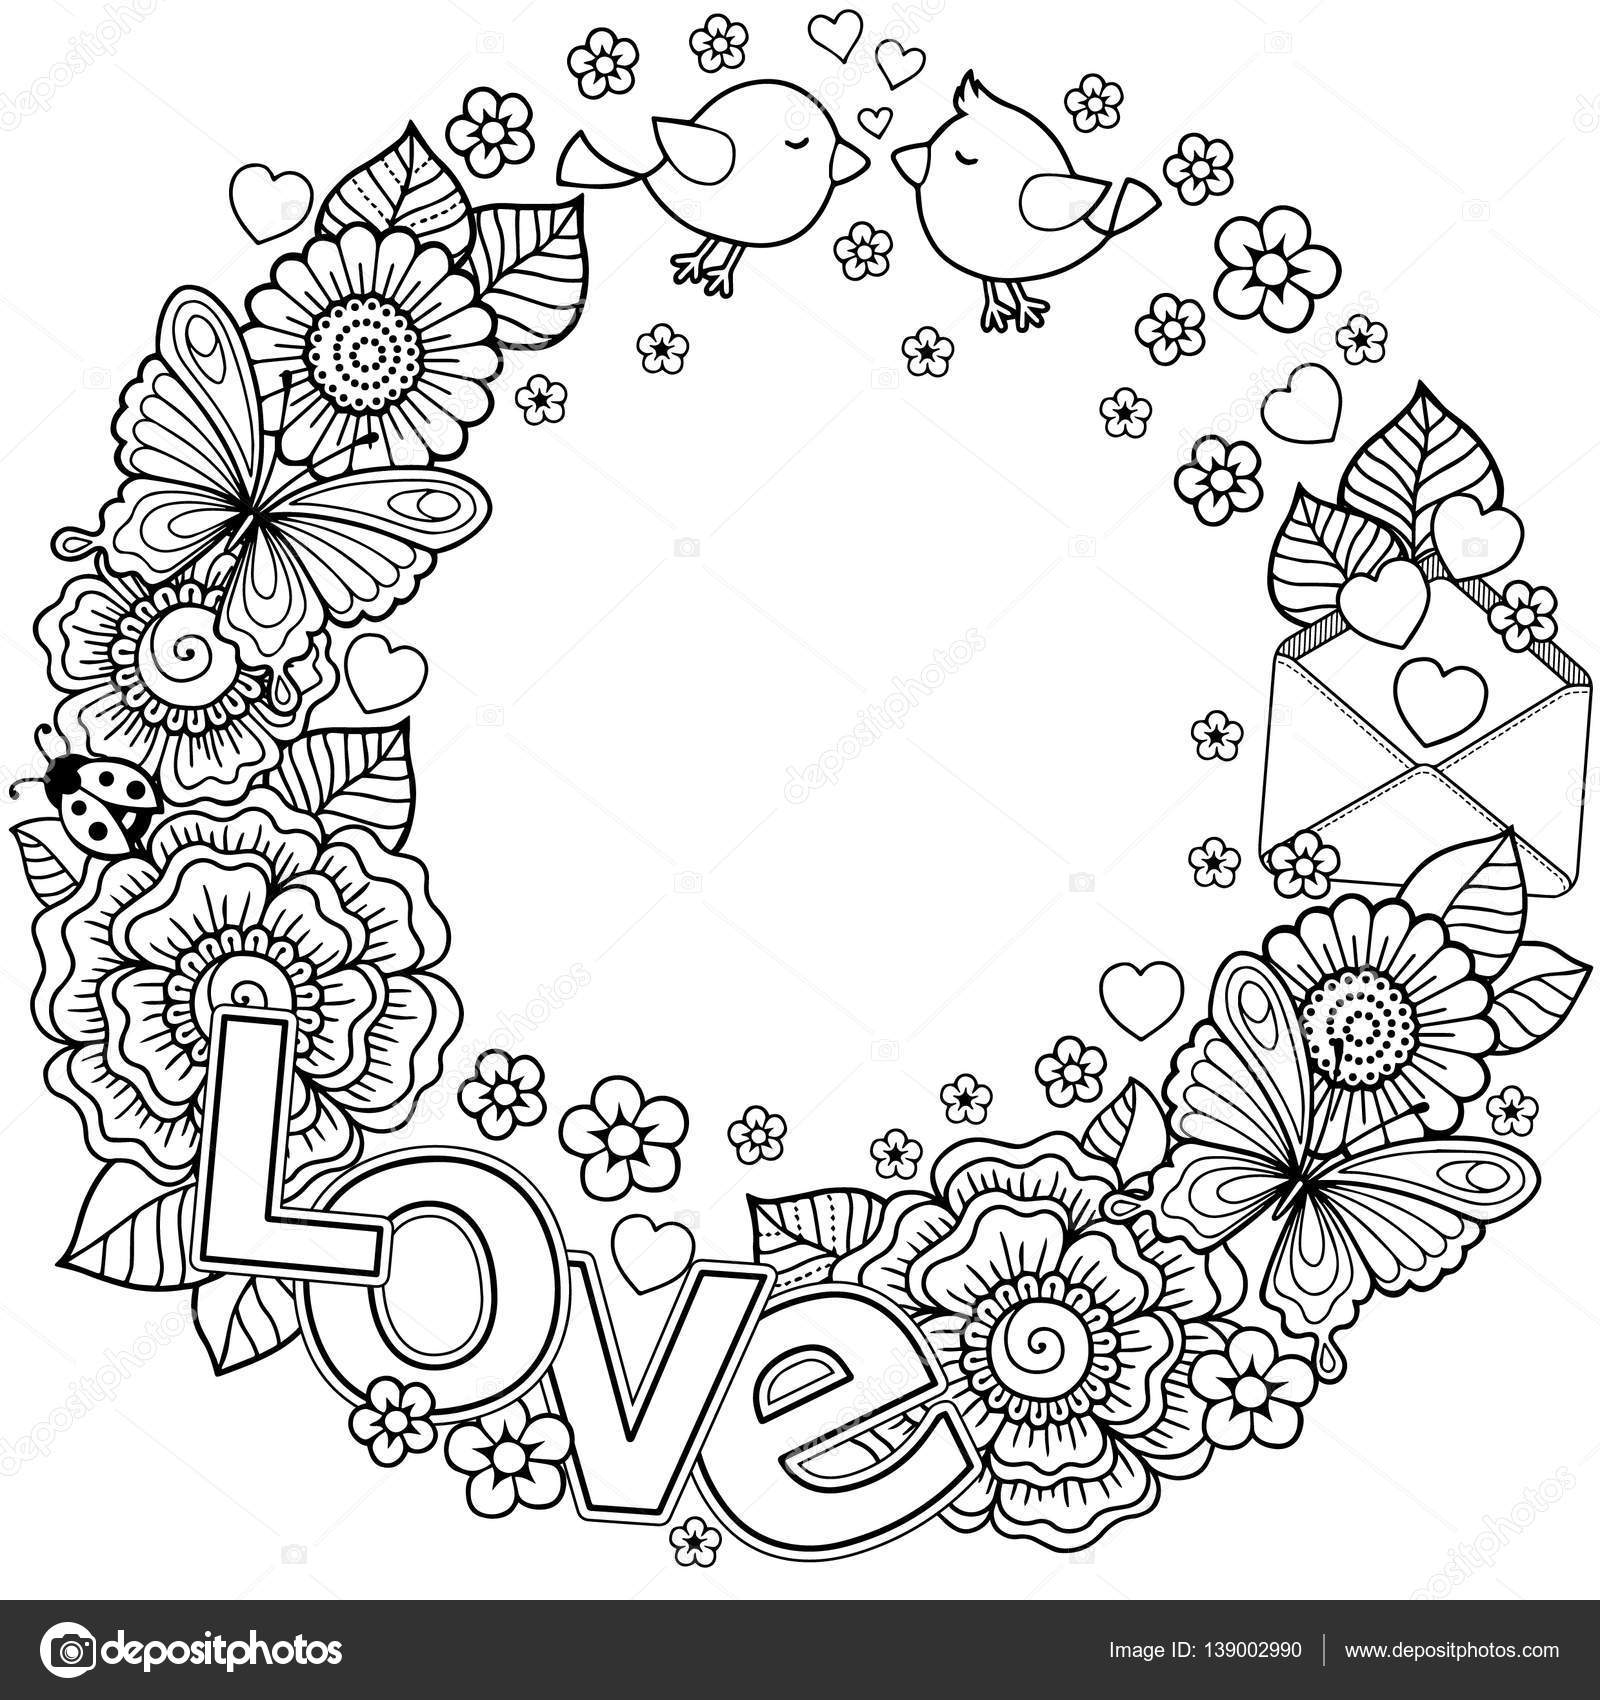 vector coloring page for adult  round shape made of